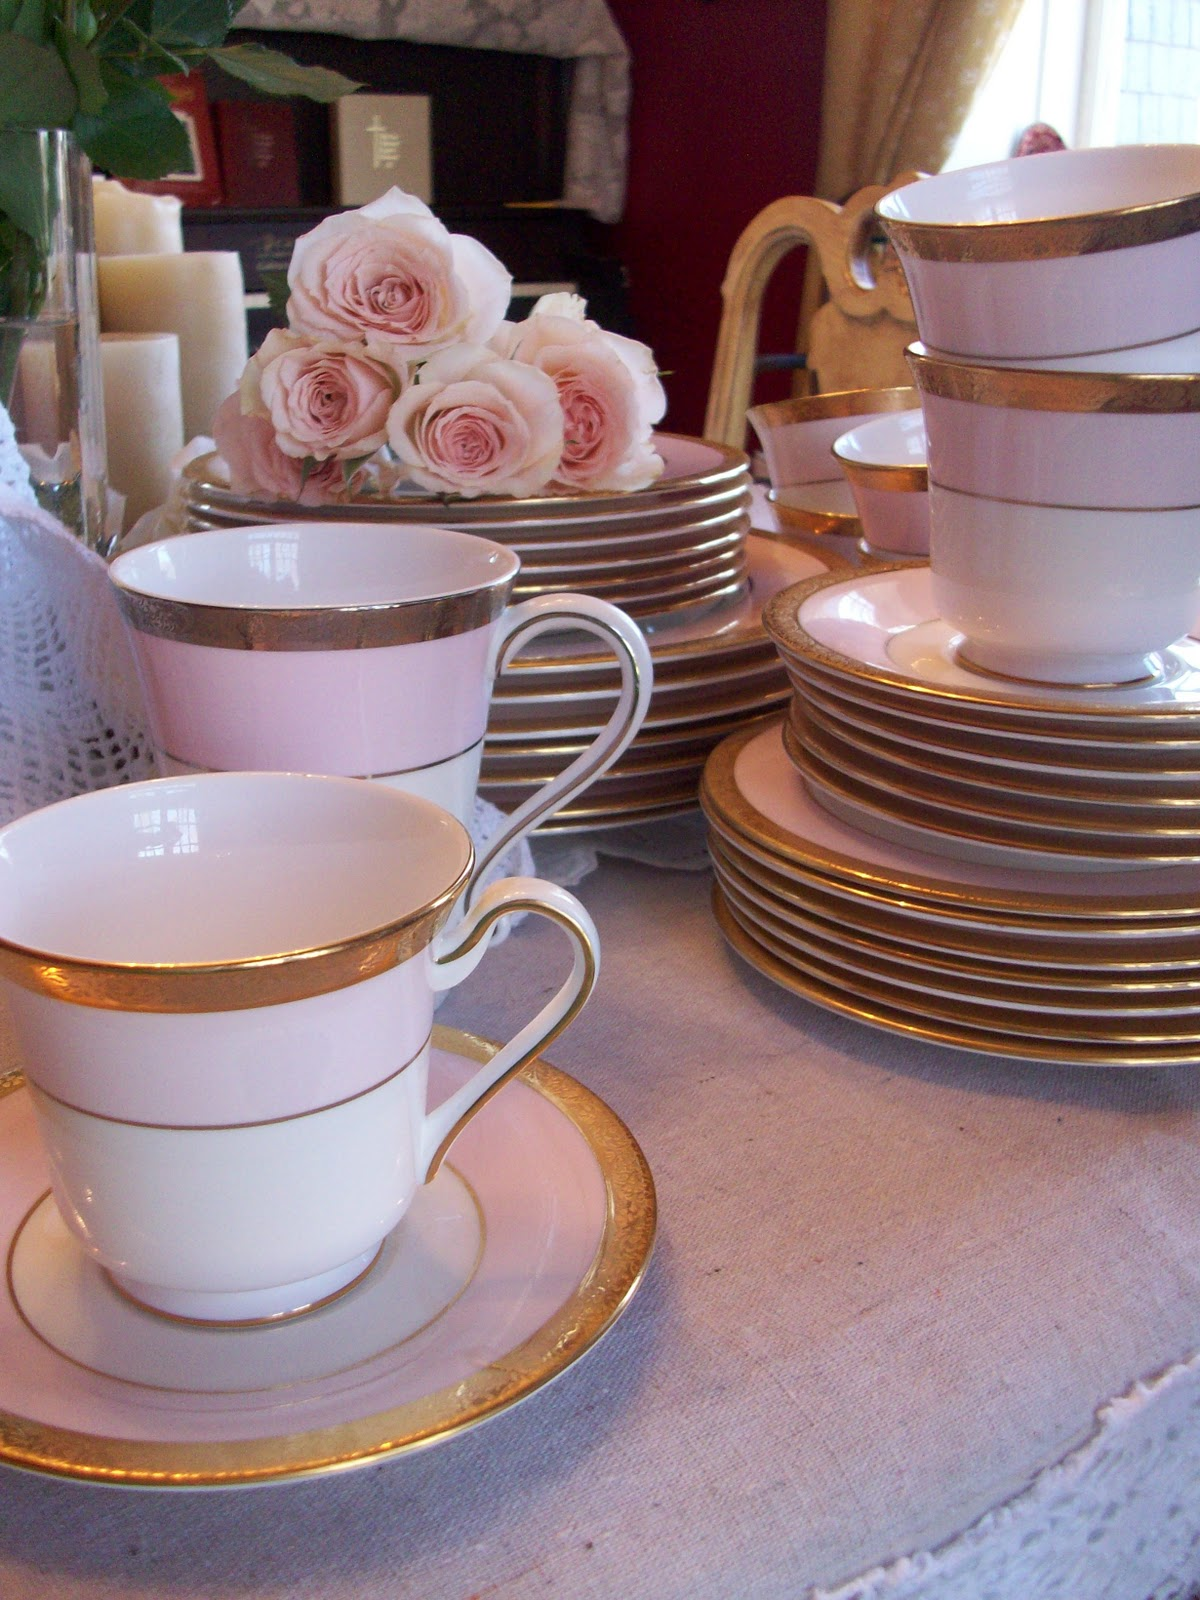 & I Adore The Exquisite Beauty of Mary Kay Pink China